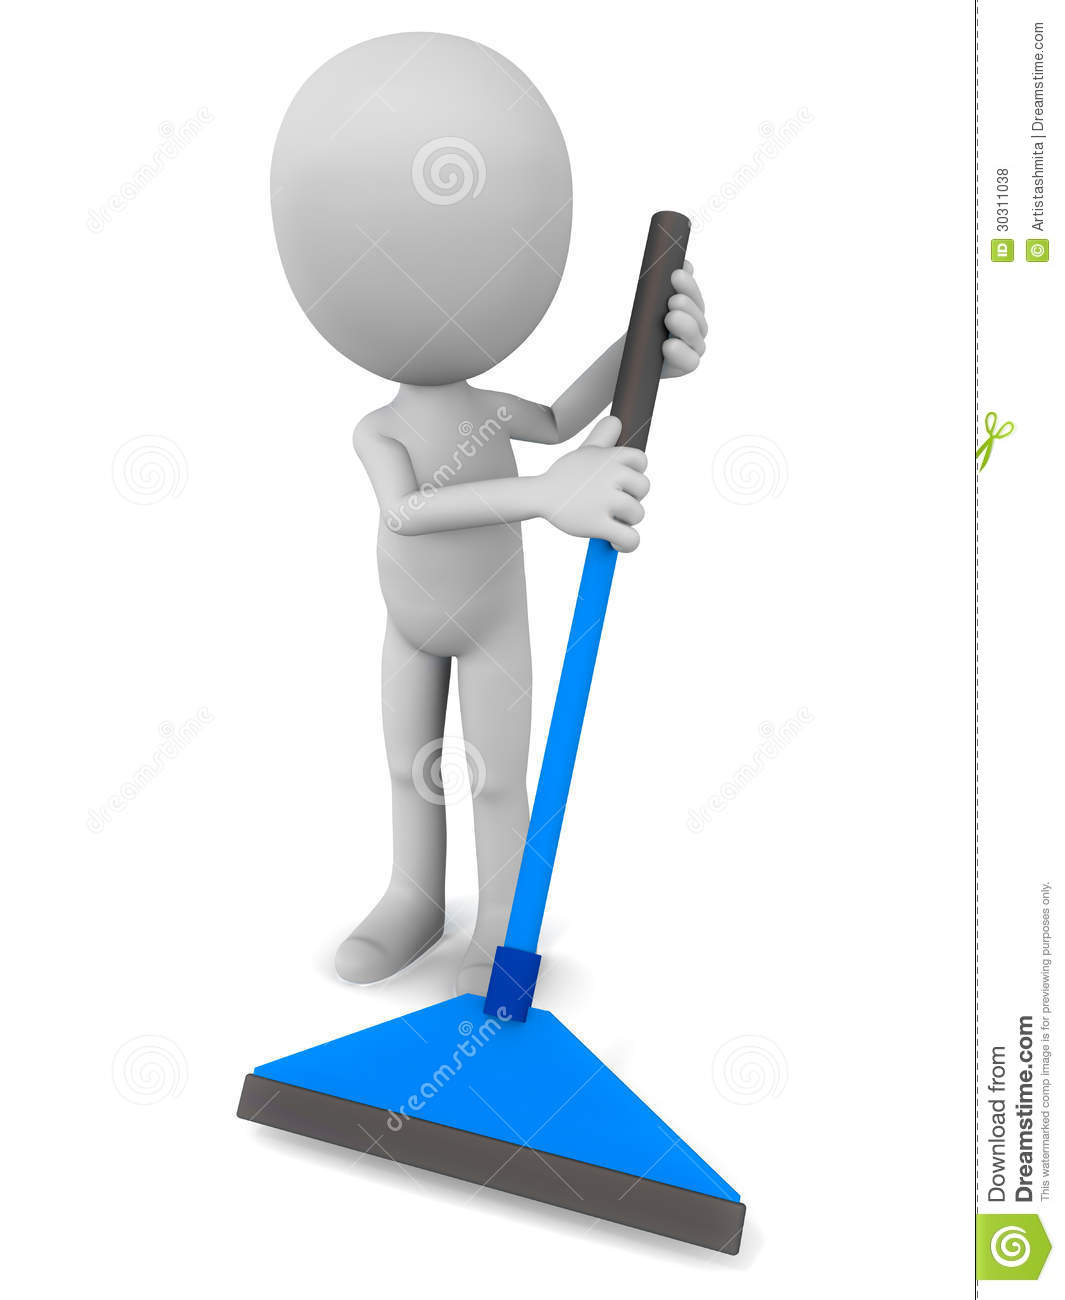 Mopping The Floor Royalty Free Stock Photos Image 30311038